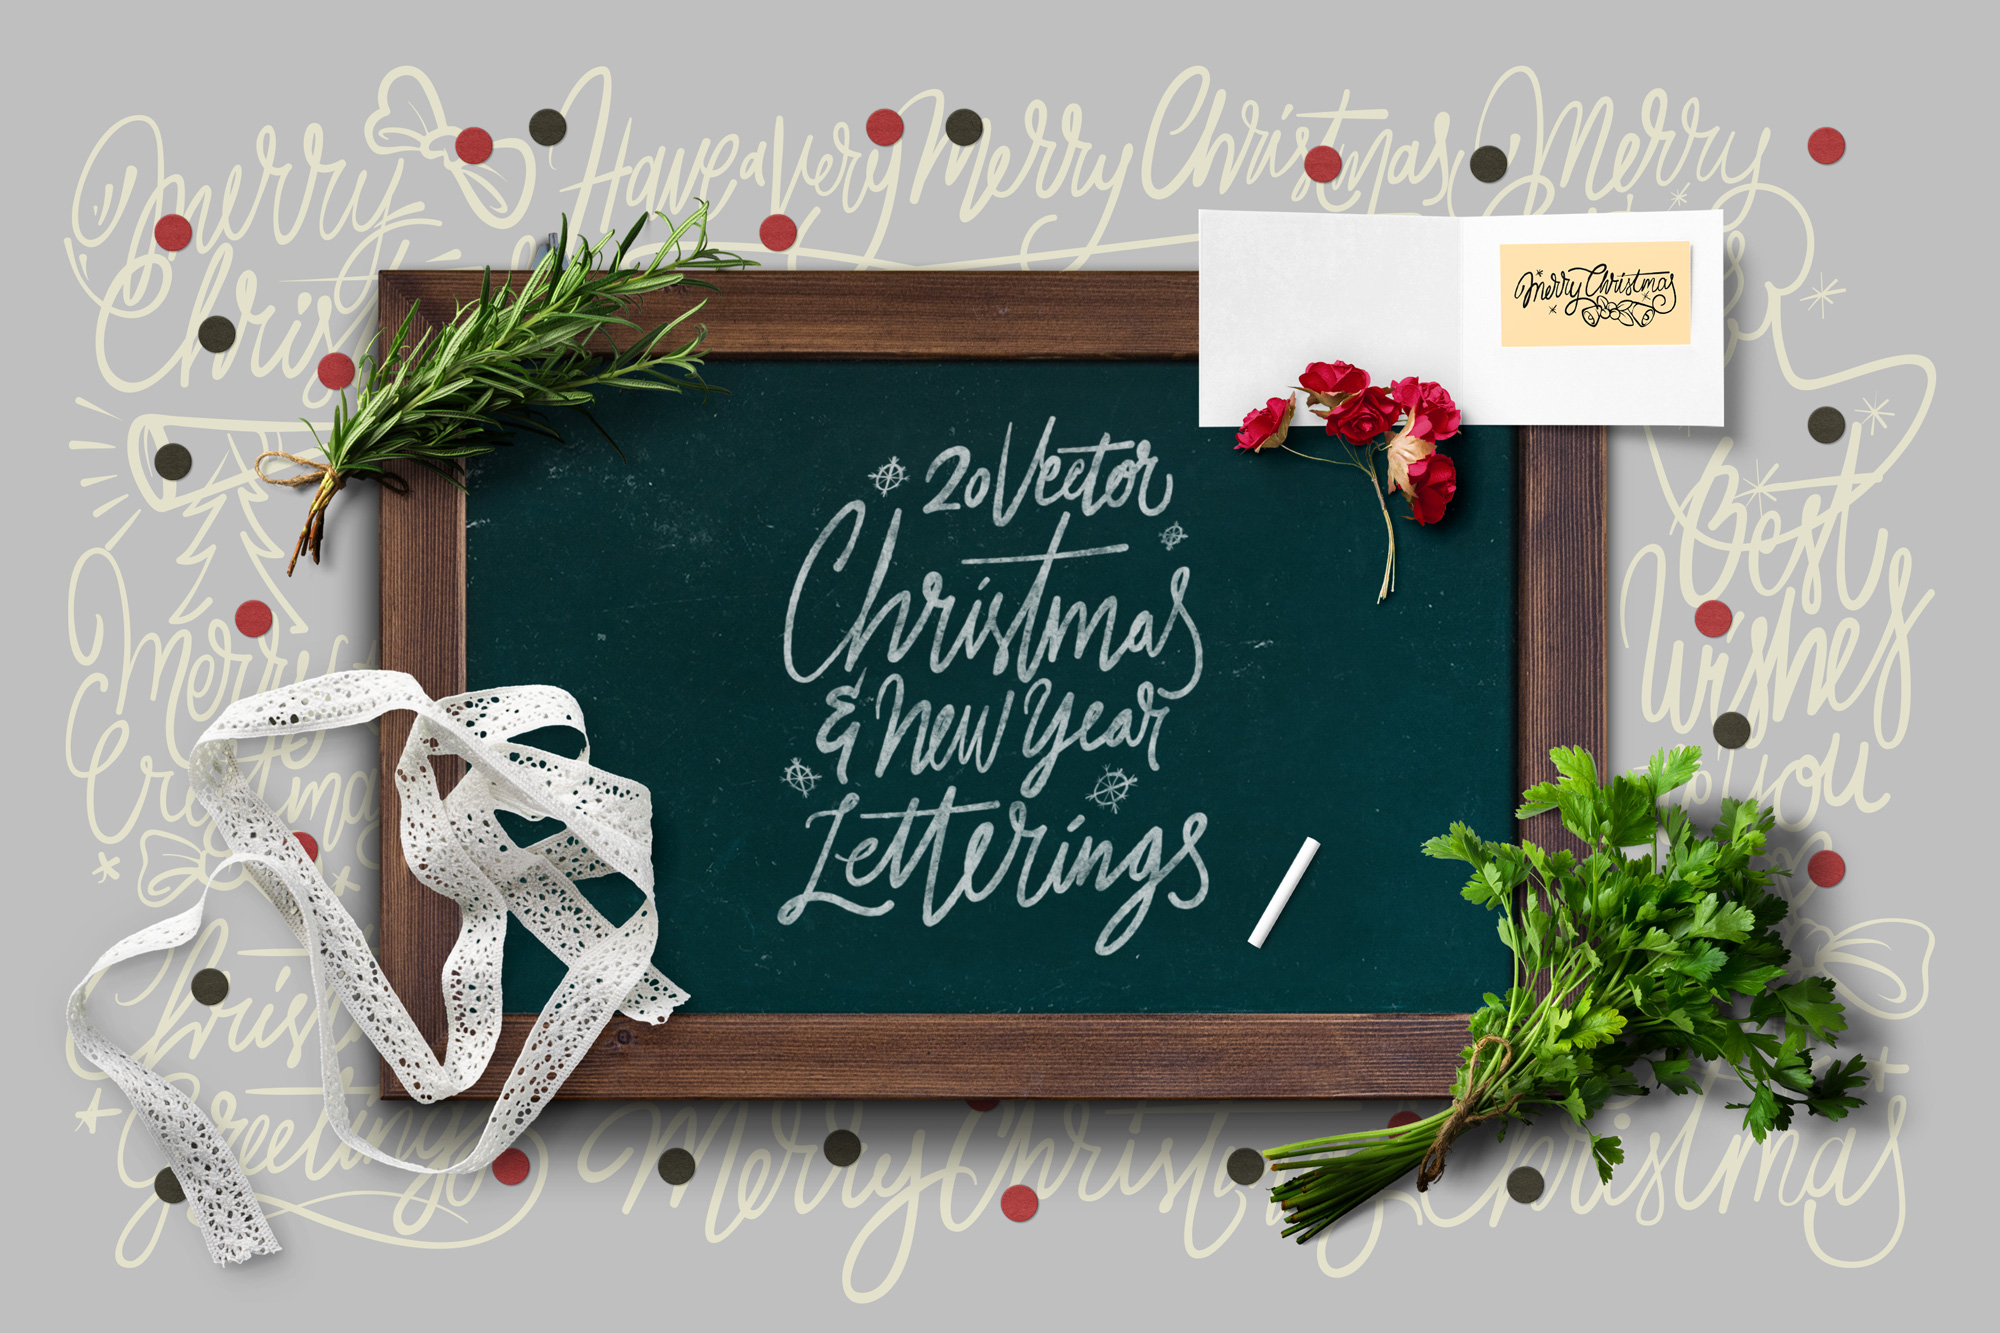 20 Christmas & NYE Letterings Vector example image 1